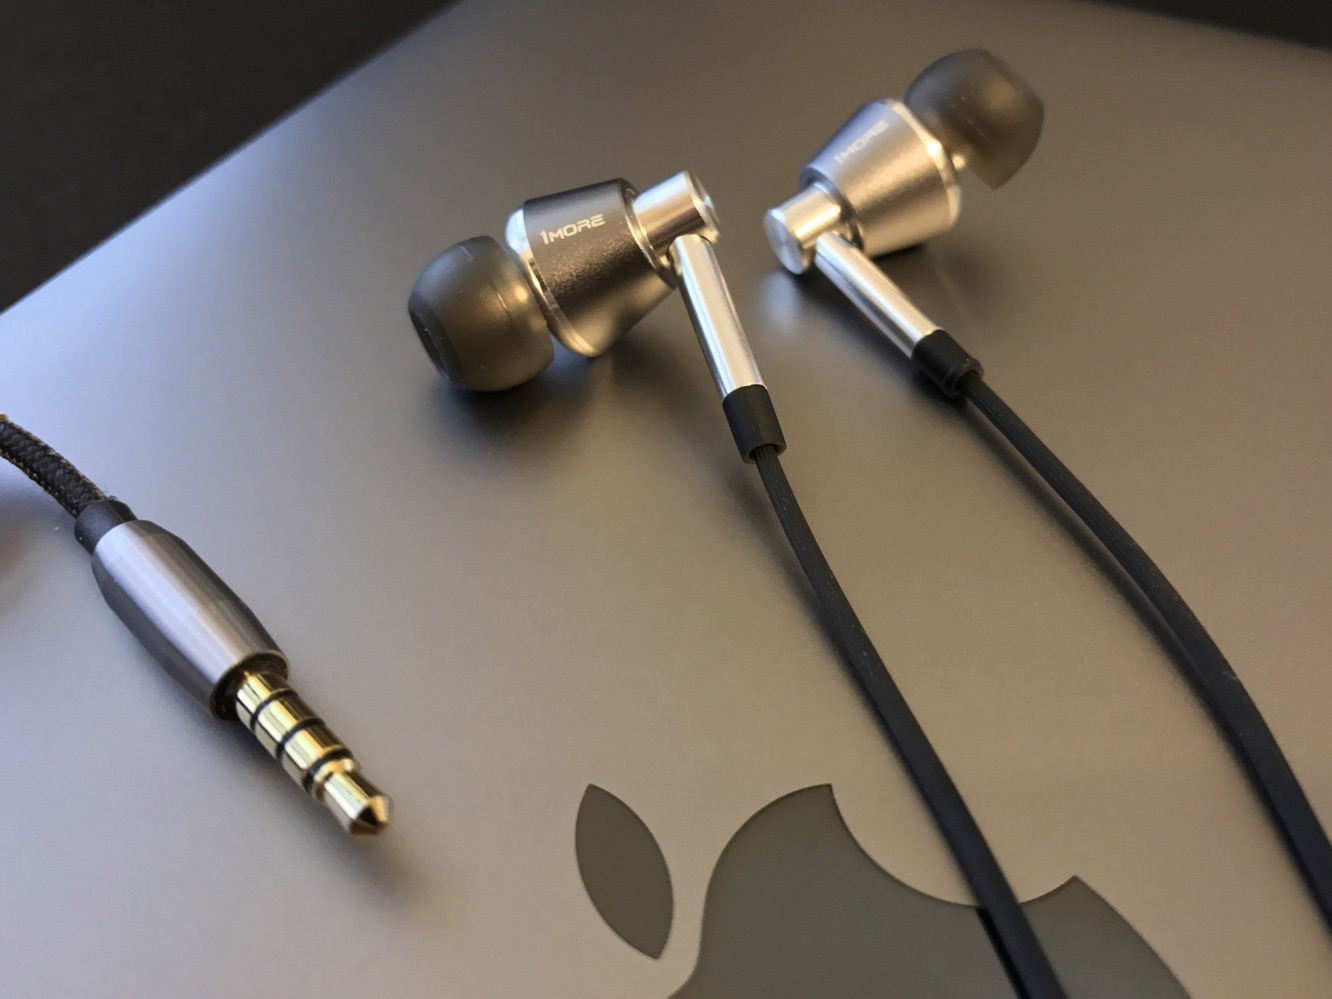 Review: 1More Triple Driver In-Ear Headphones